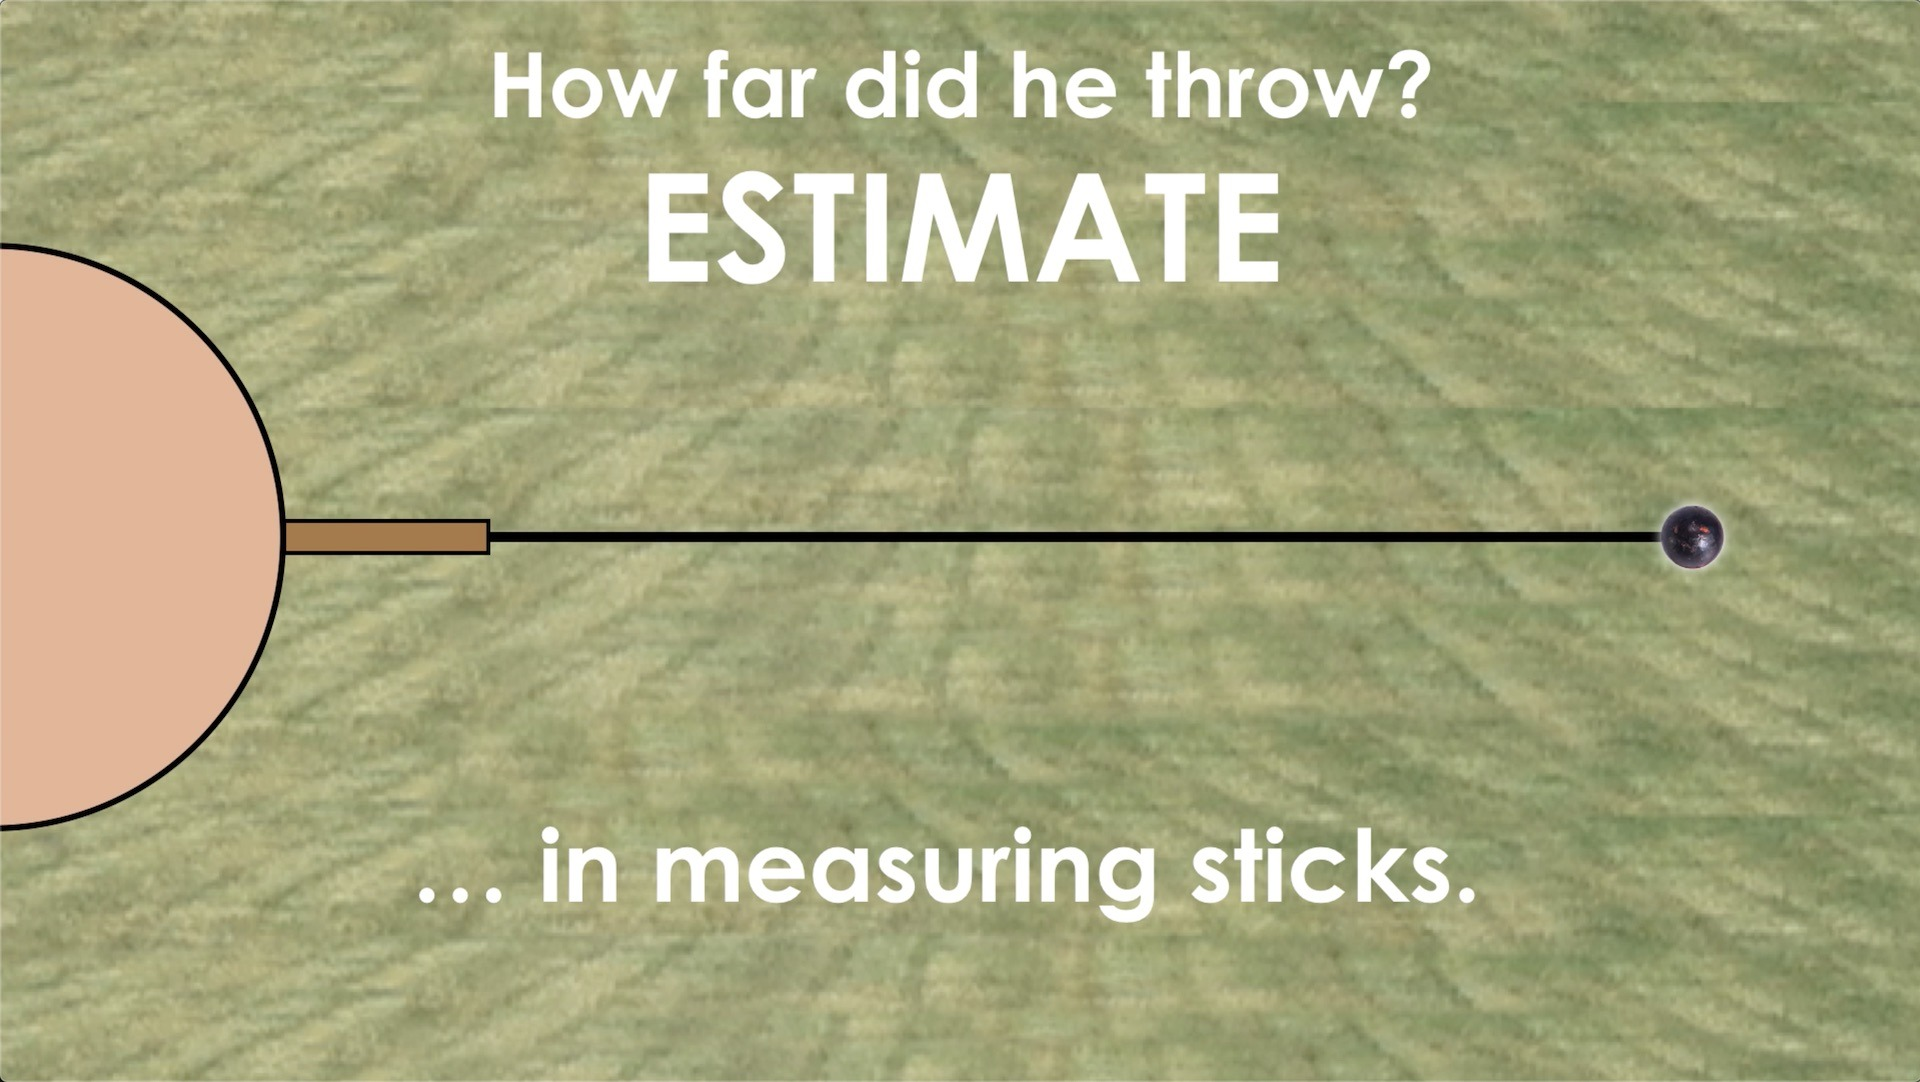 Shot Put 03 Sense Making Estimates and Prompt image 2 sm